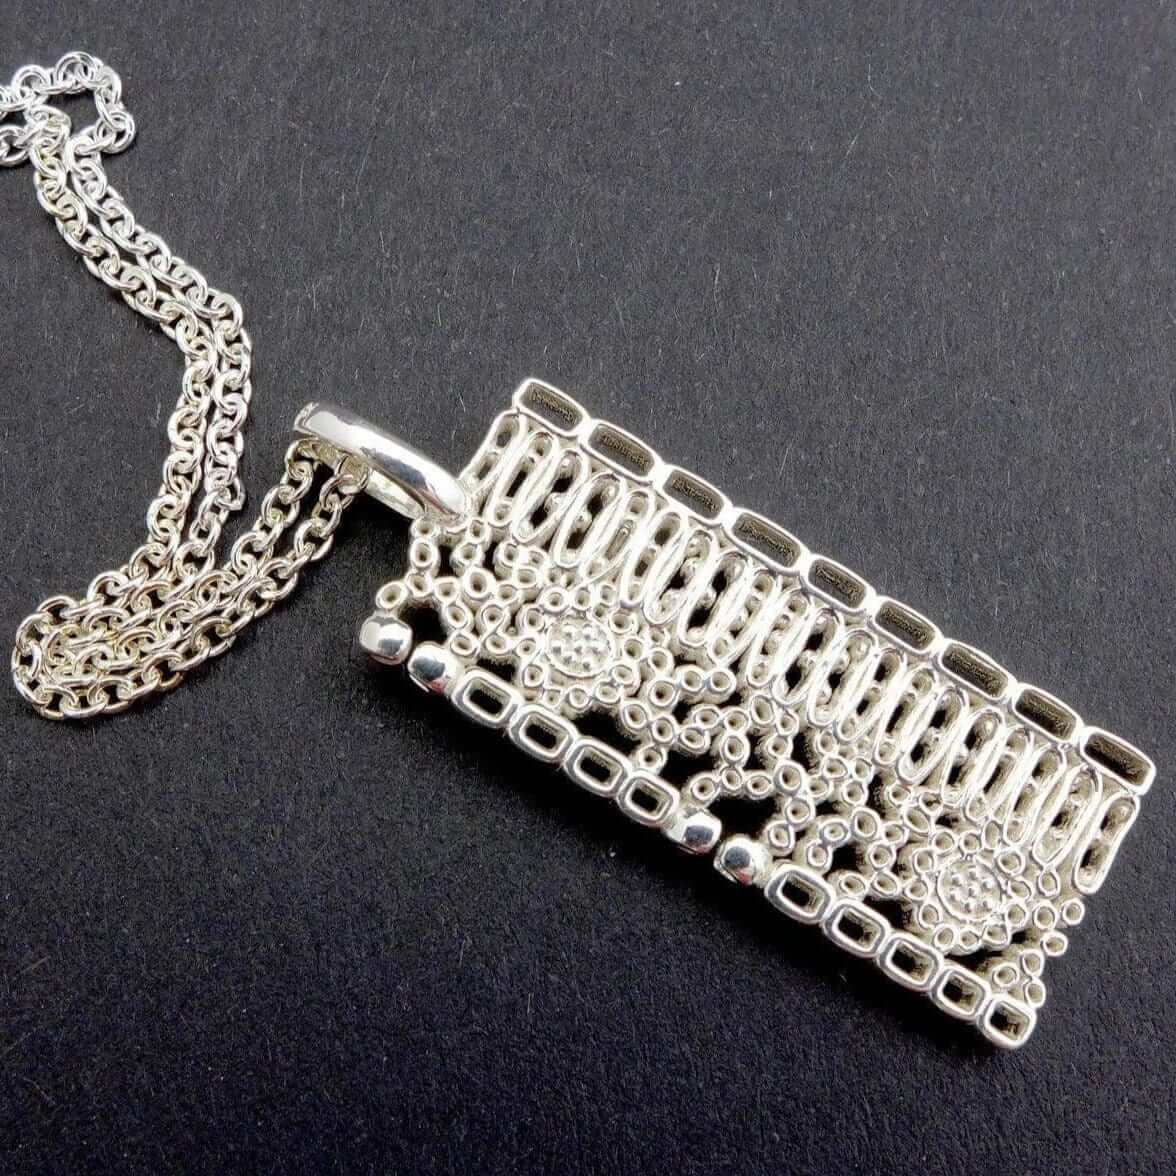 Science Jewelry: Dicot Leaf Anatomy Pendant in silver